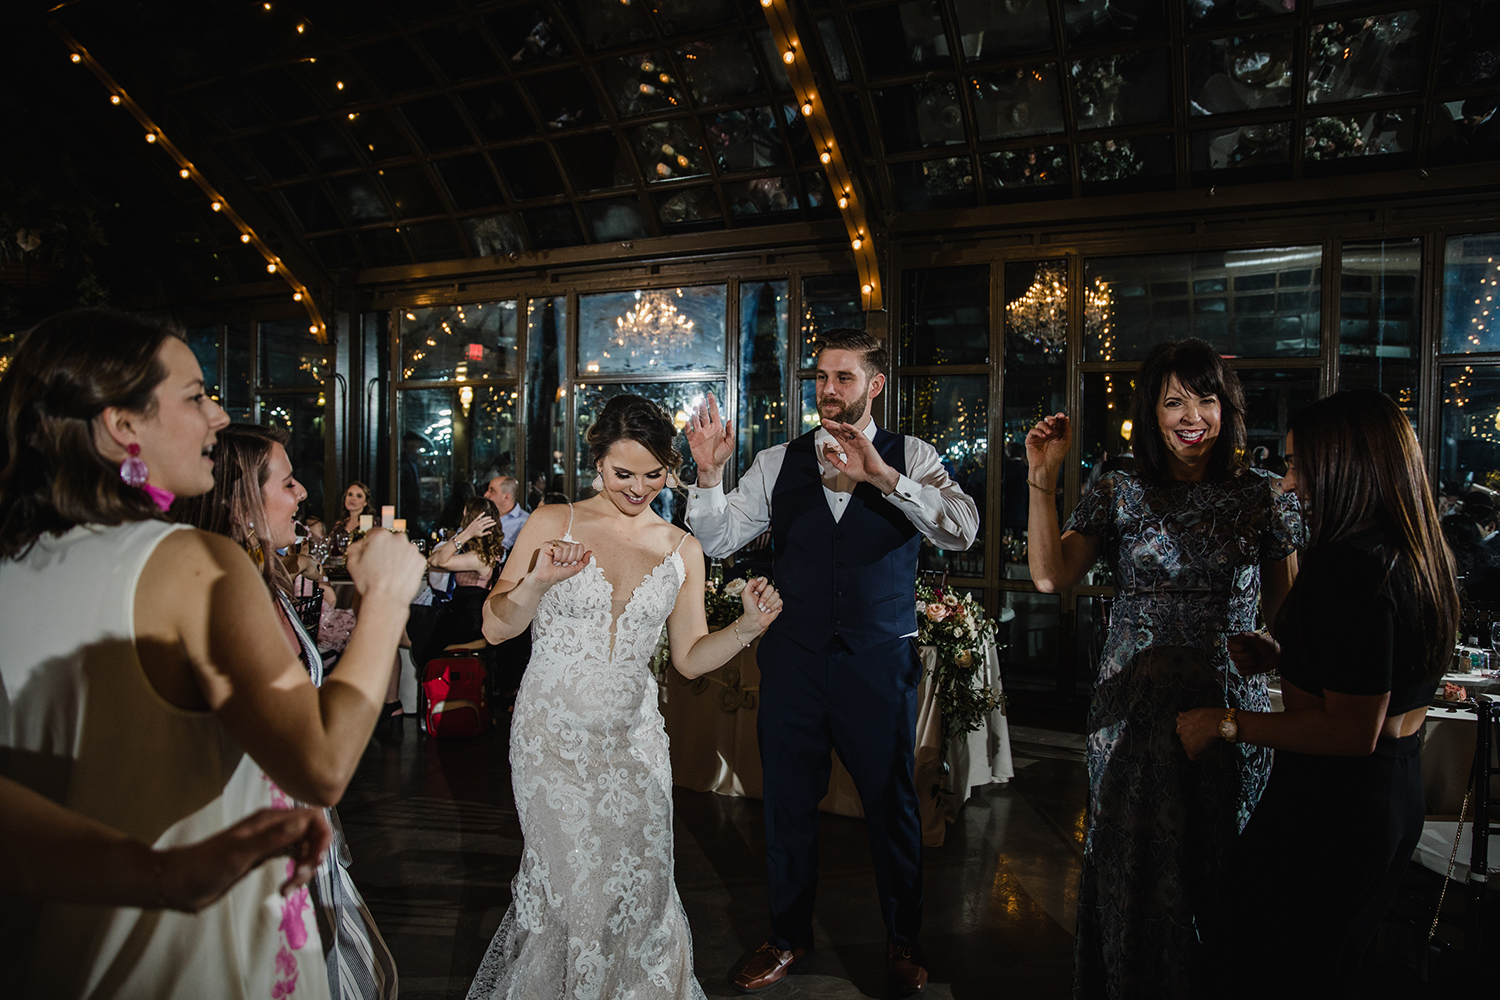 dancing and entertainment - wedding reception photography